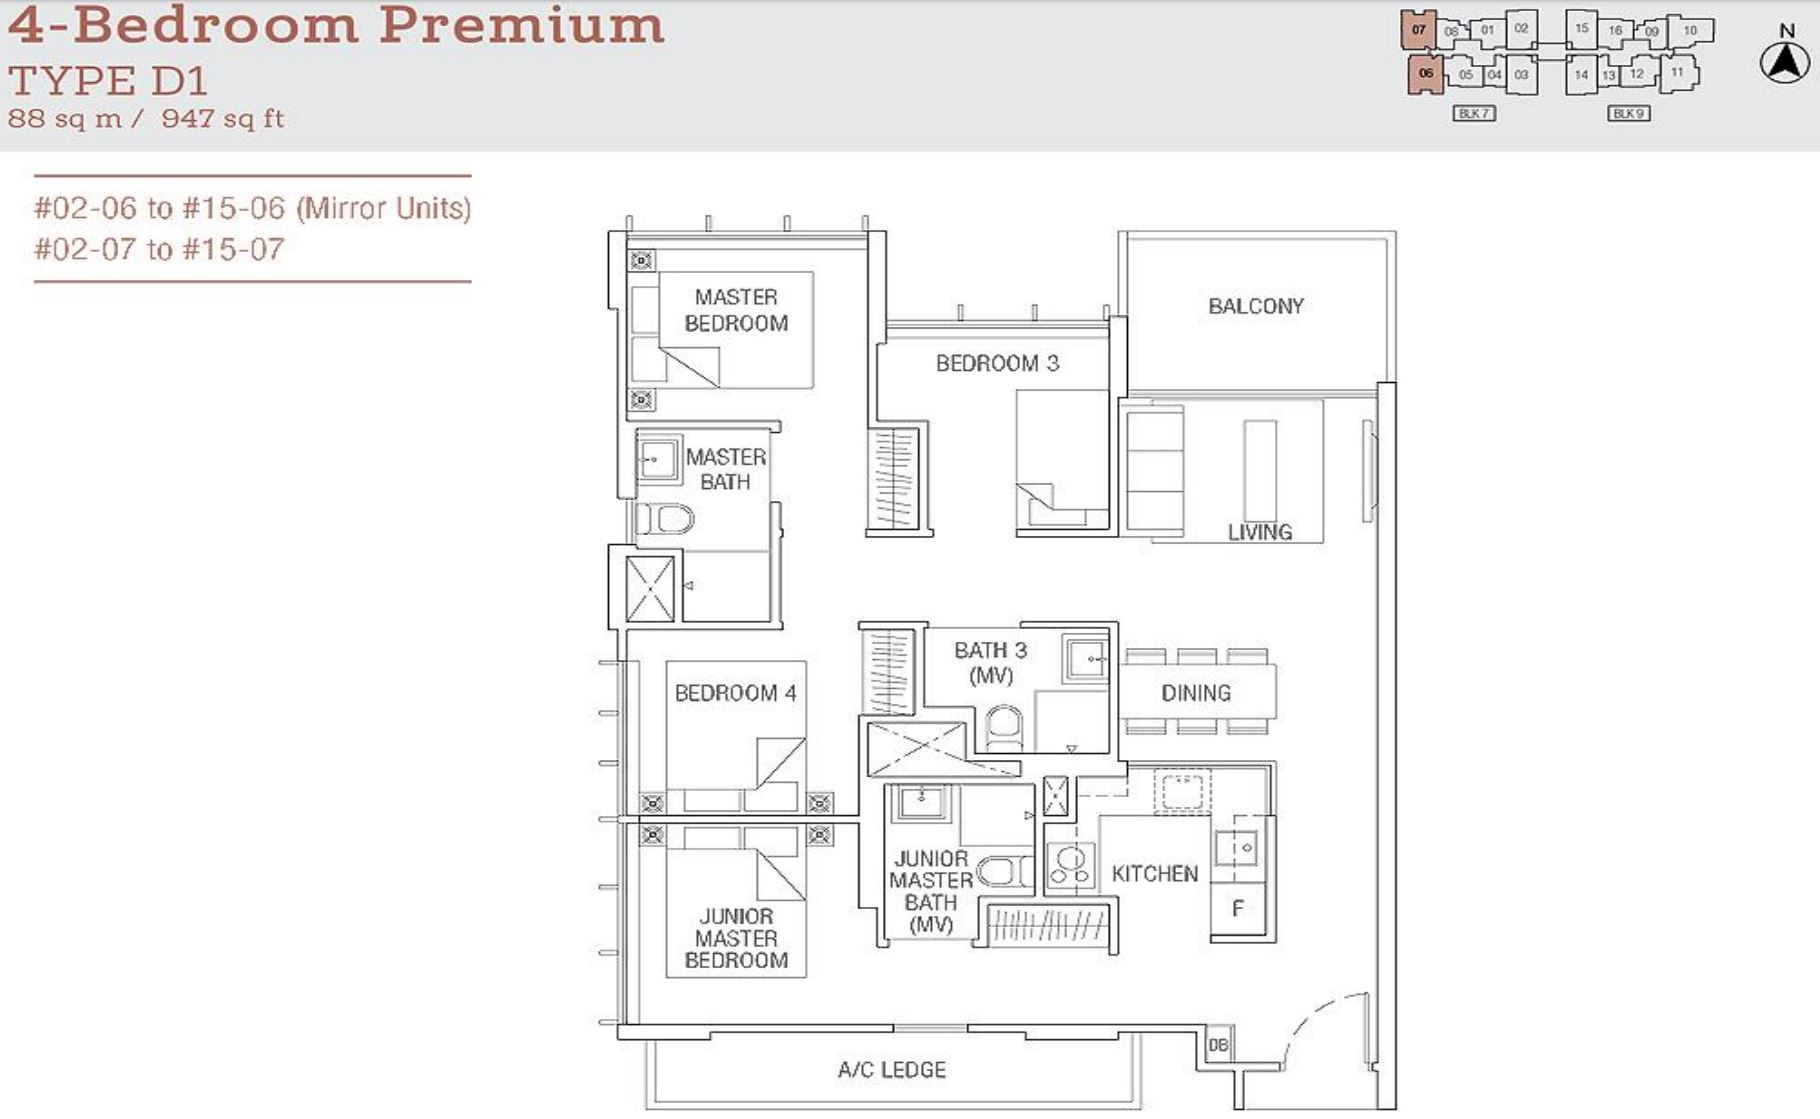 Tre Residences FloorPlan - 4 Bedroom Premium Type D1